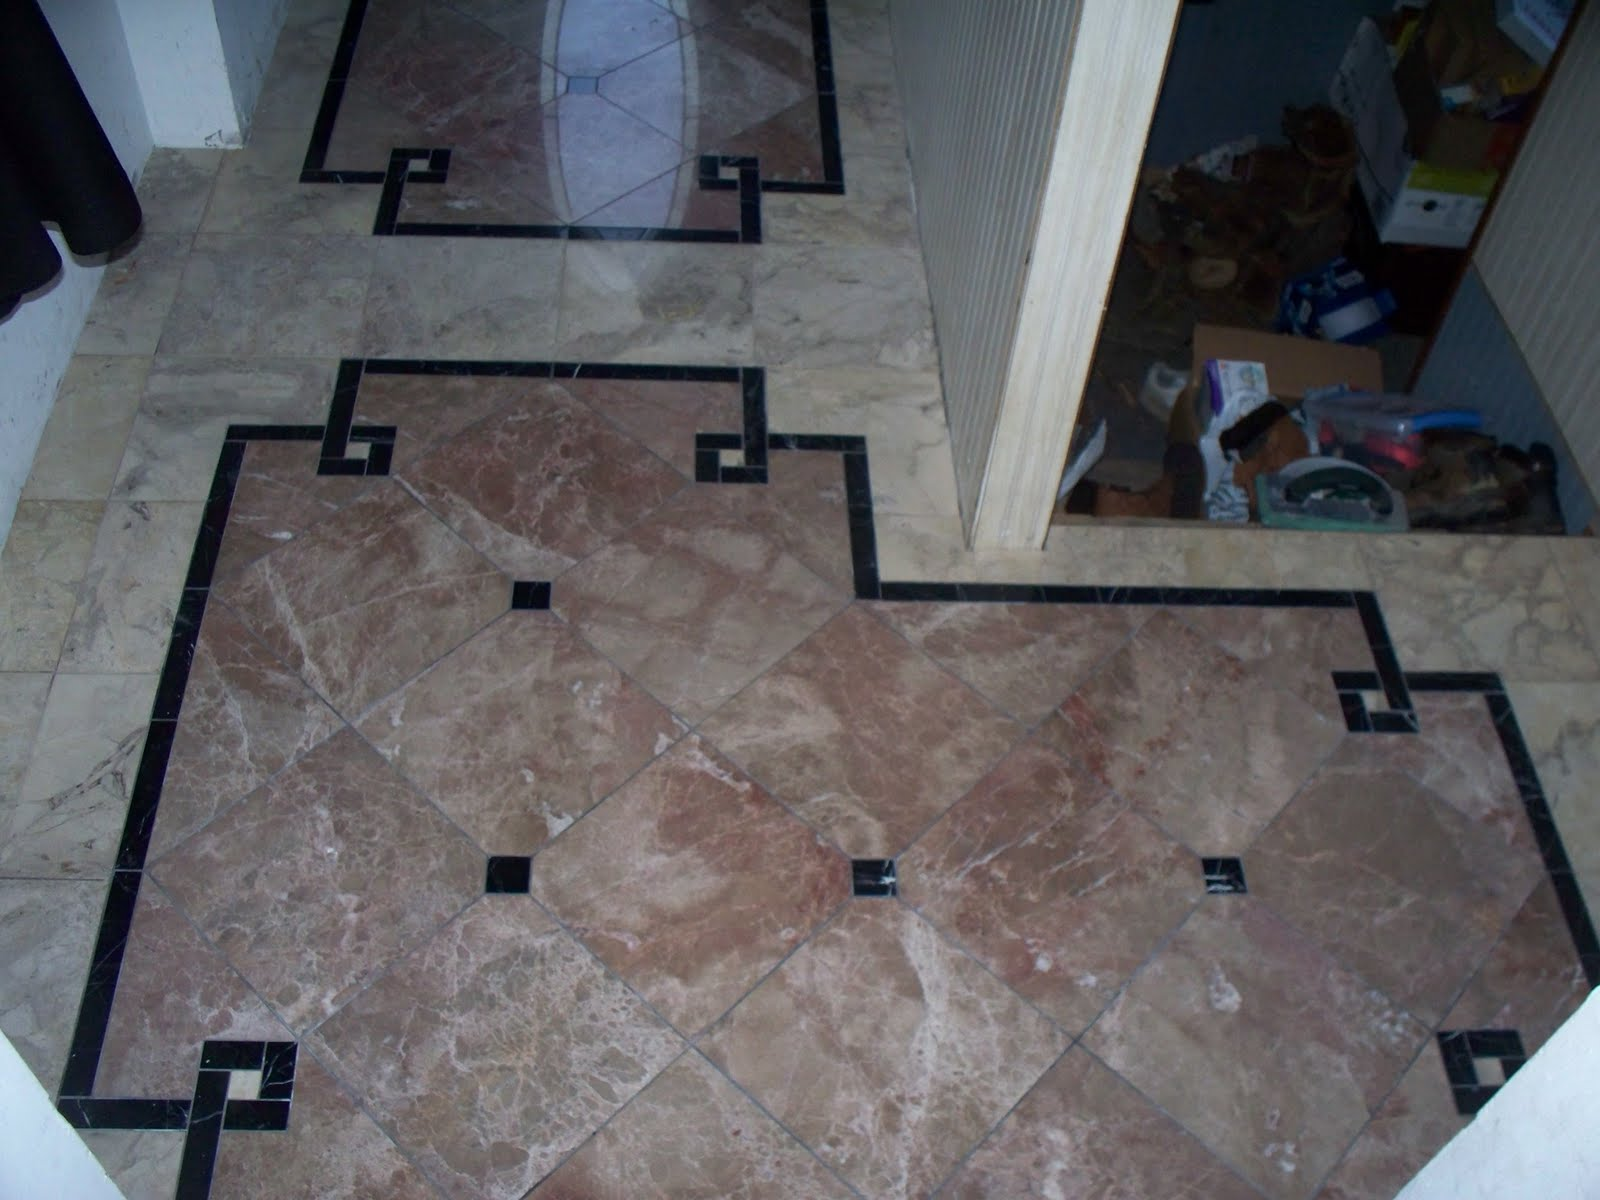 Foyer Tile Grout : Old victorian house marble floor tile entryway